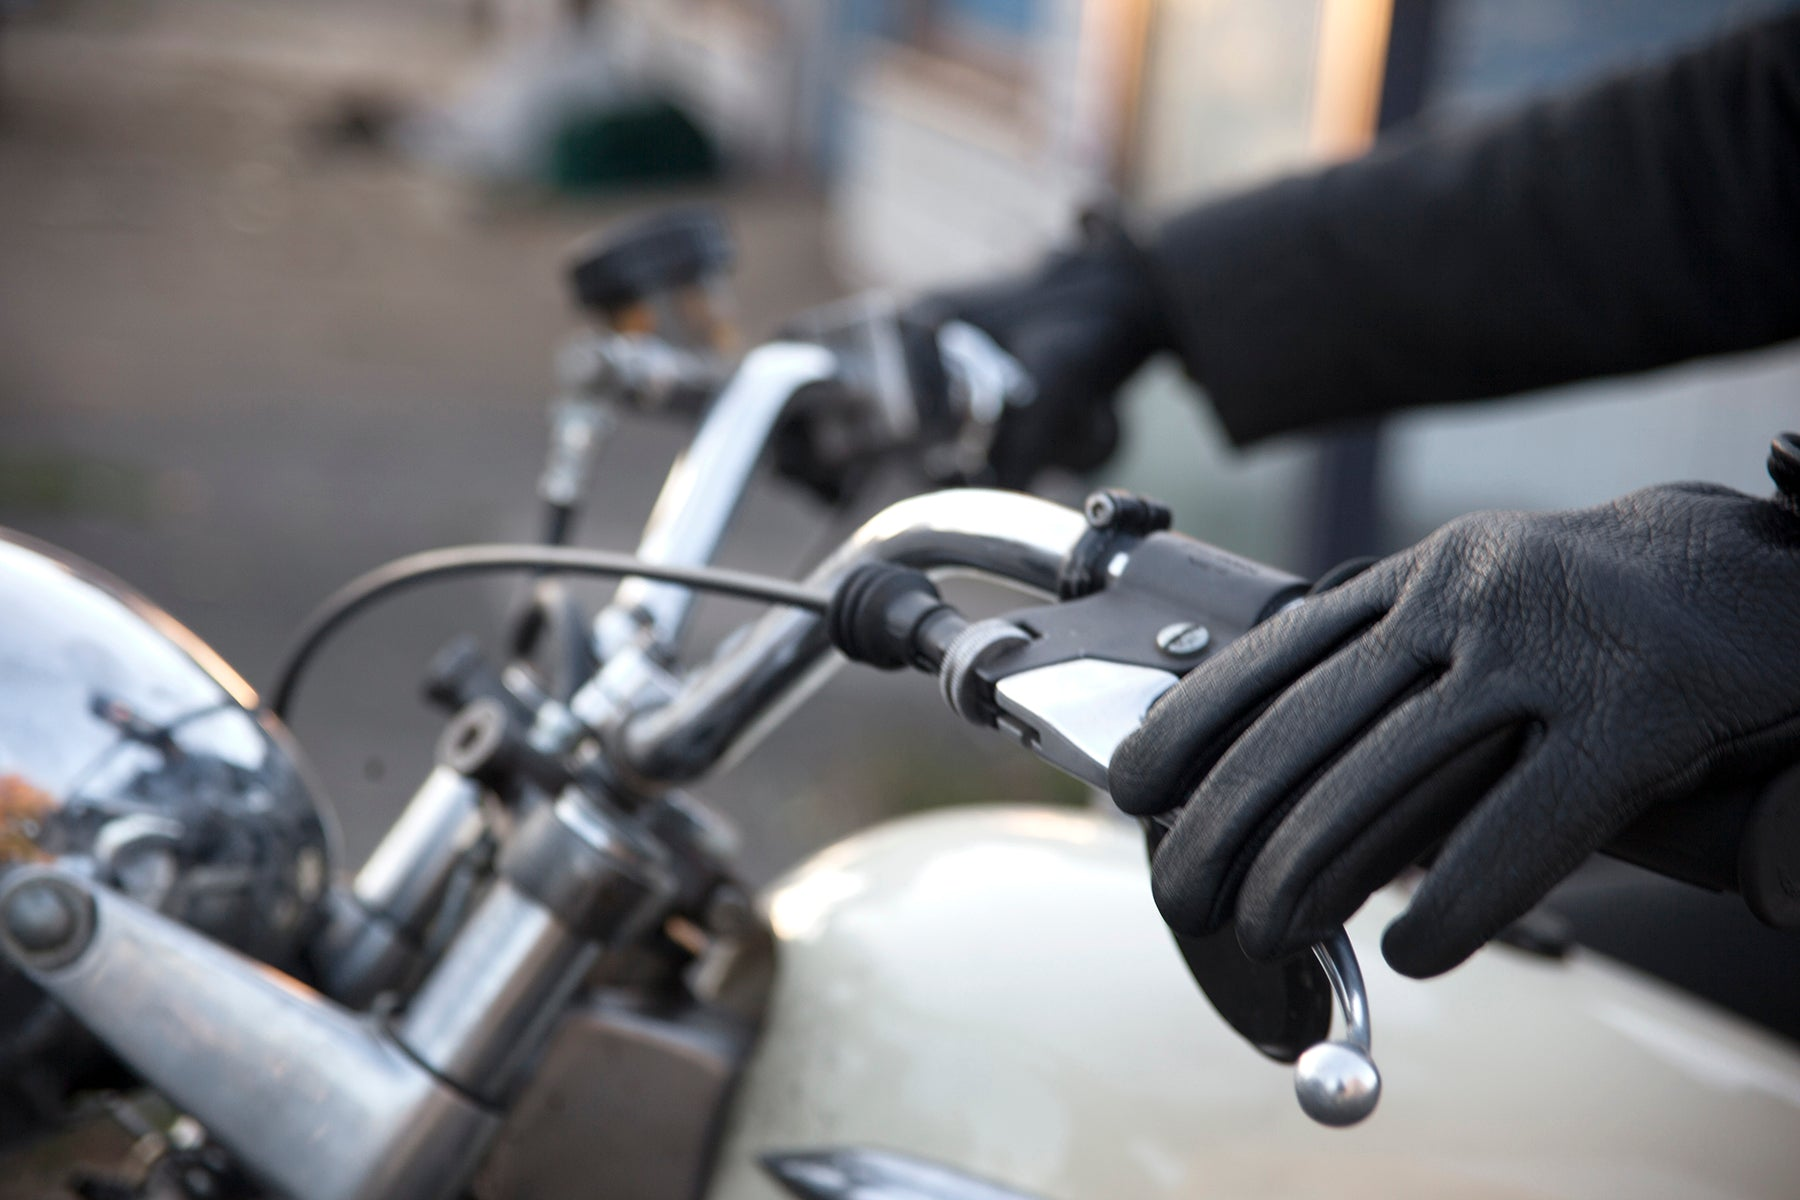 Kevlar gloves, moto gloves, leather glove, kevlar moto glove, kevlar lined gloves, black gloves, made in usa, red clouds gloves